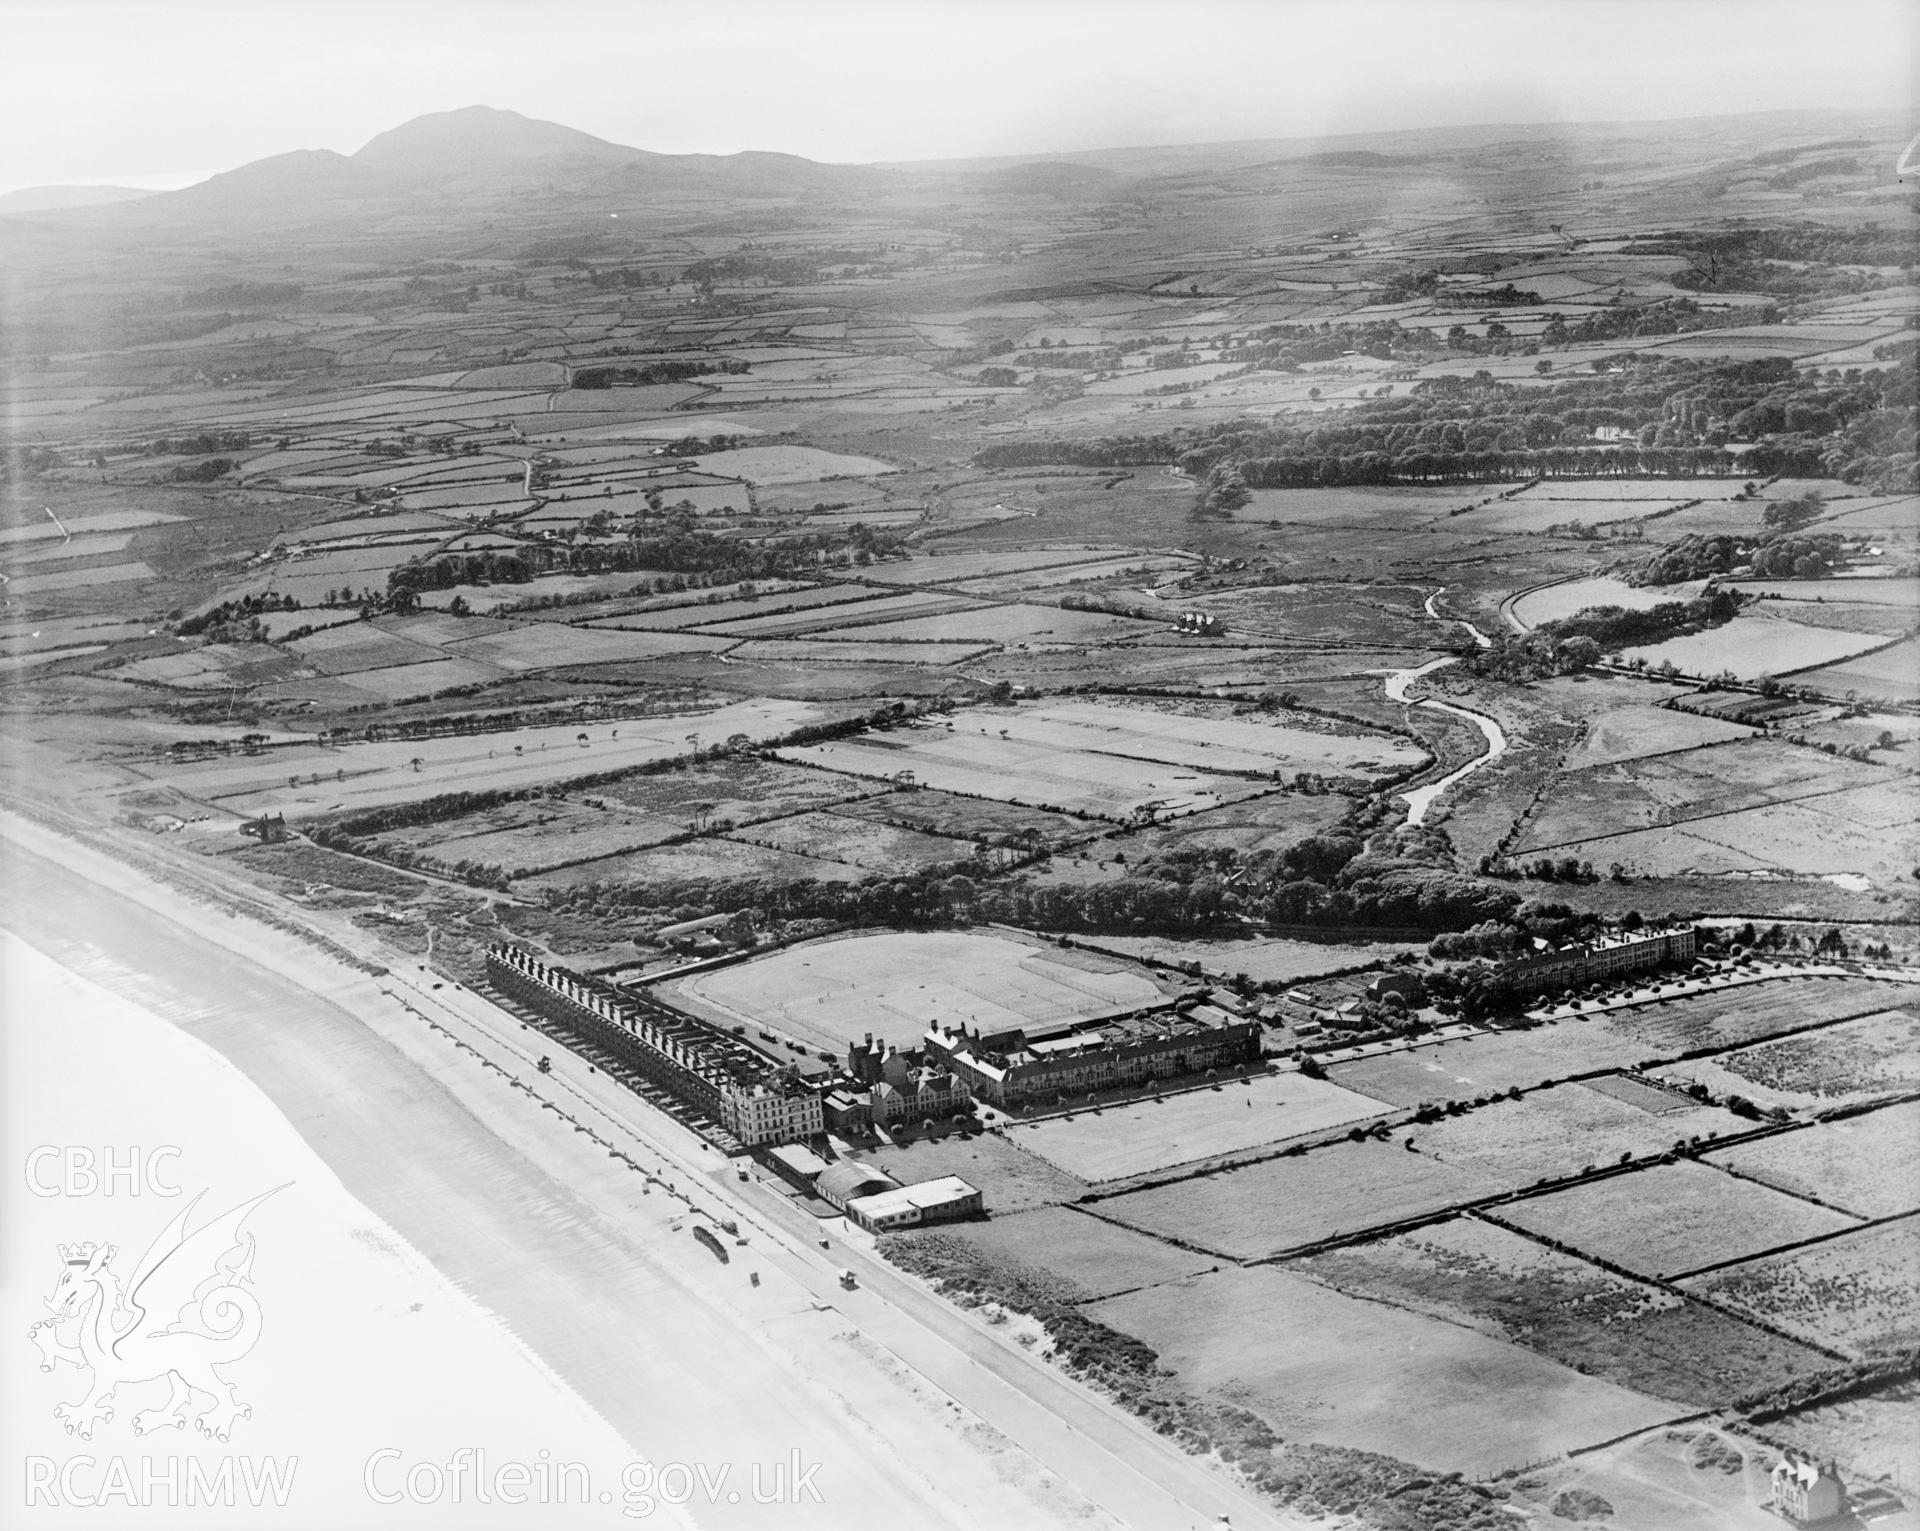 View of Pwllheli showing promenade and recreation ground, oblique aerial view. 5?x4? black and white glass plate negative.